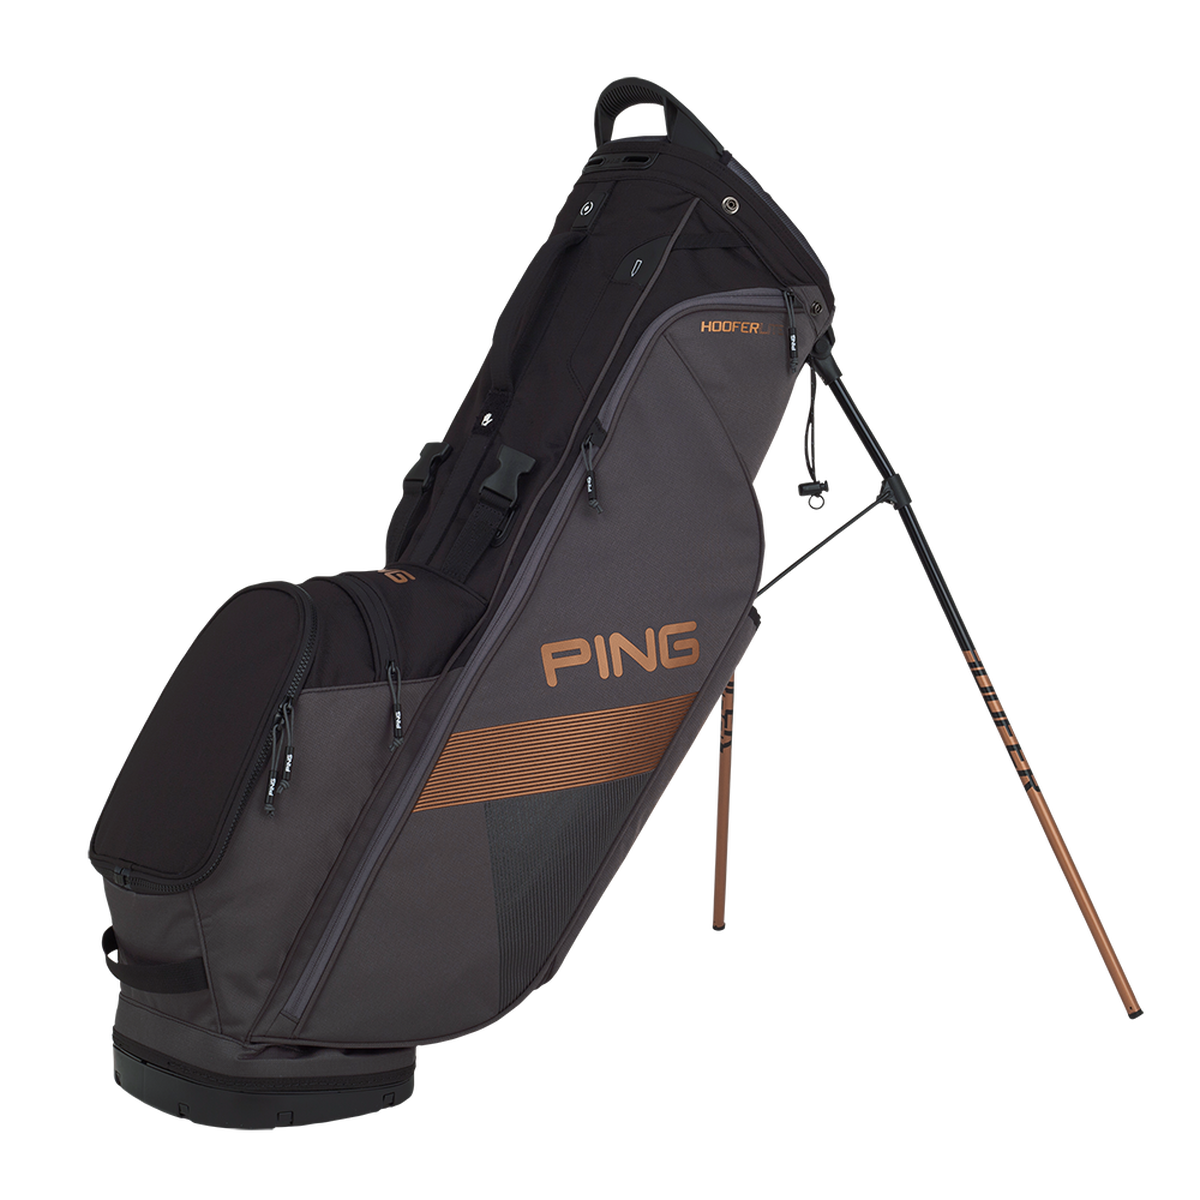 Putter clip golf bag. Ping hoofer lite stand